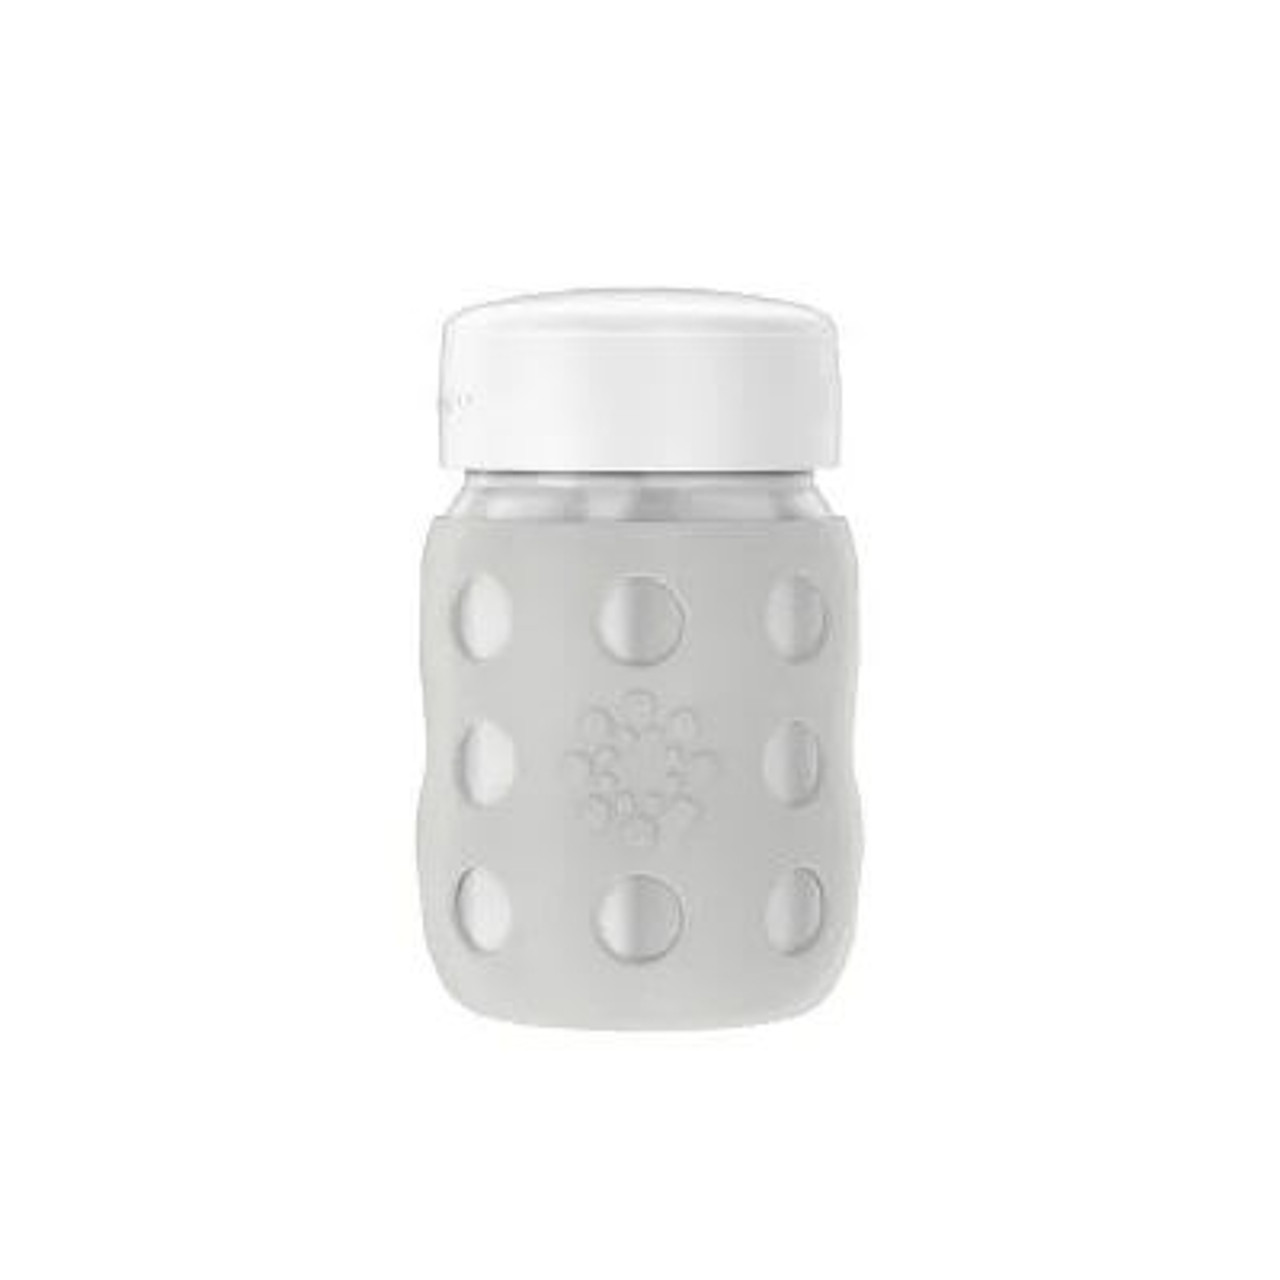 Stainless Steel Baby Bottle with Flat Cap - Grey